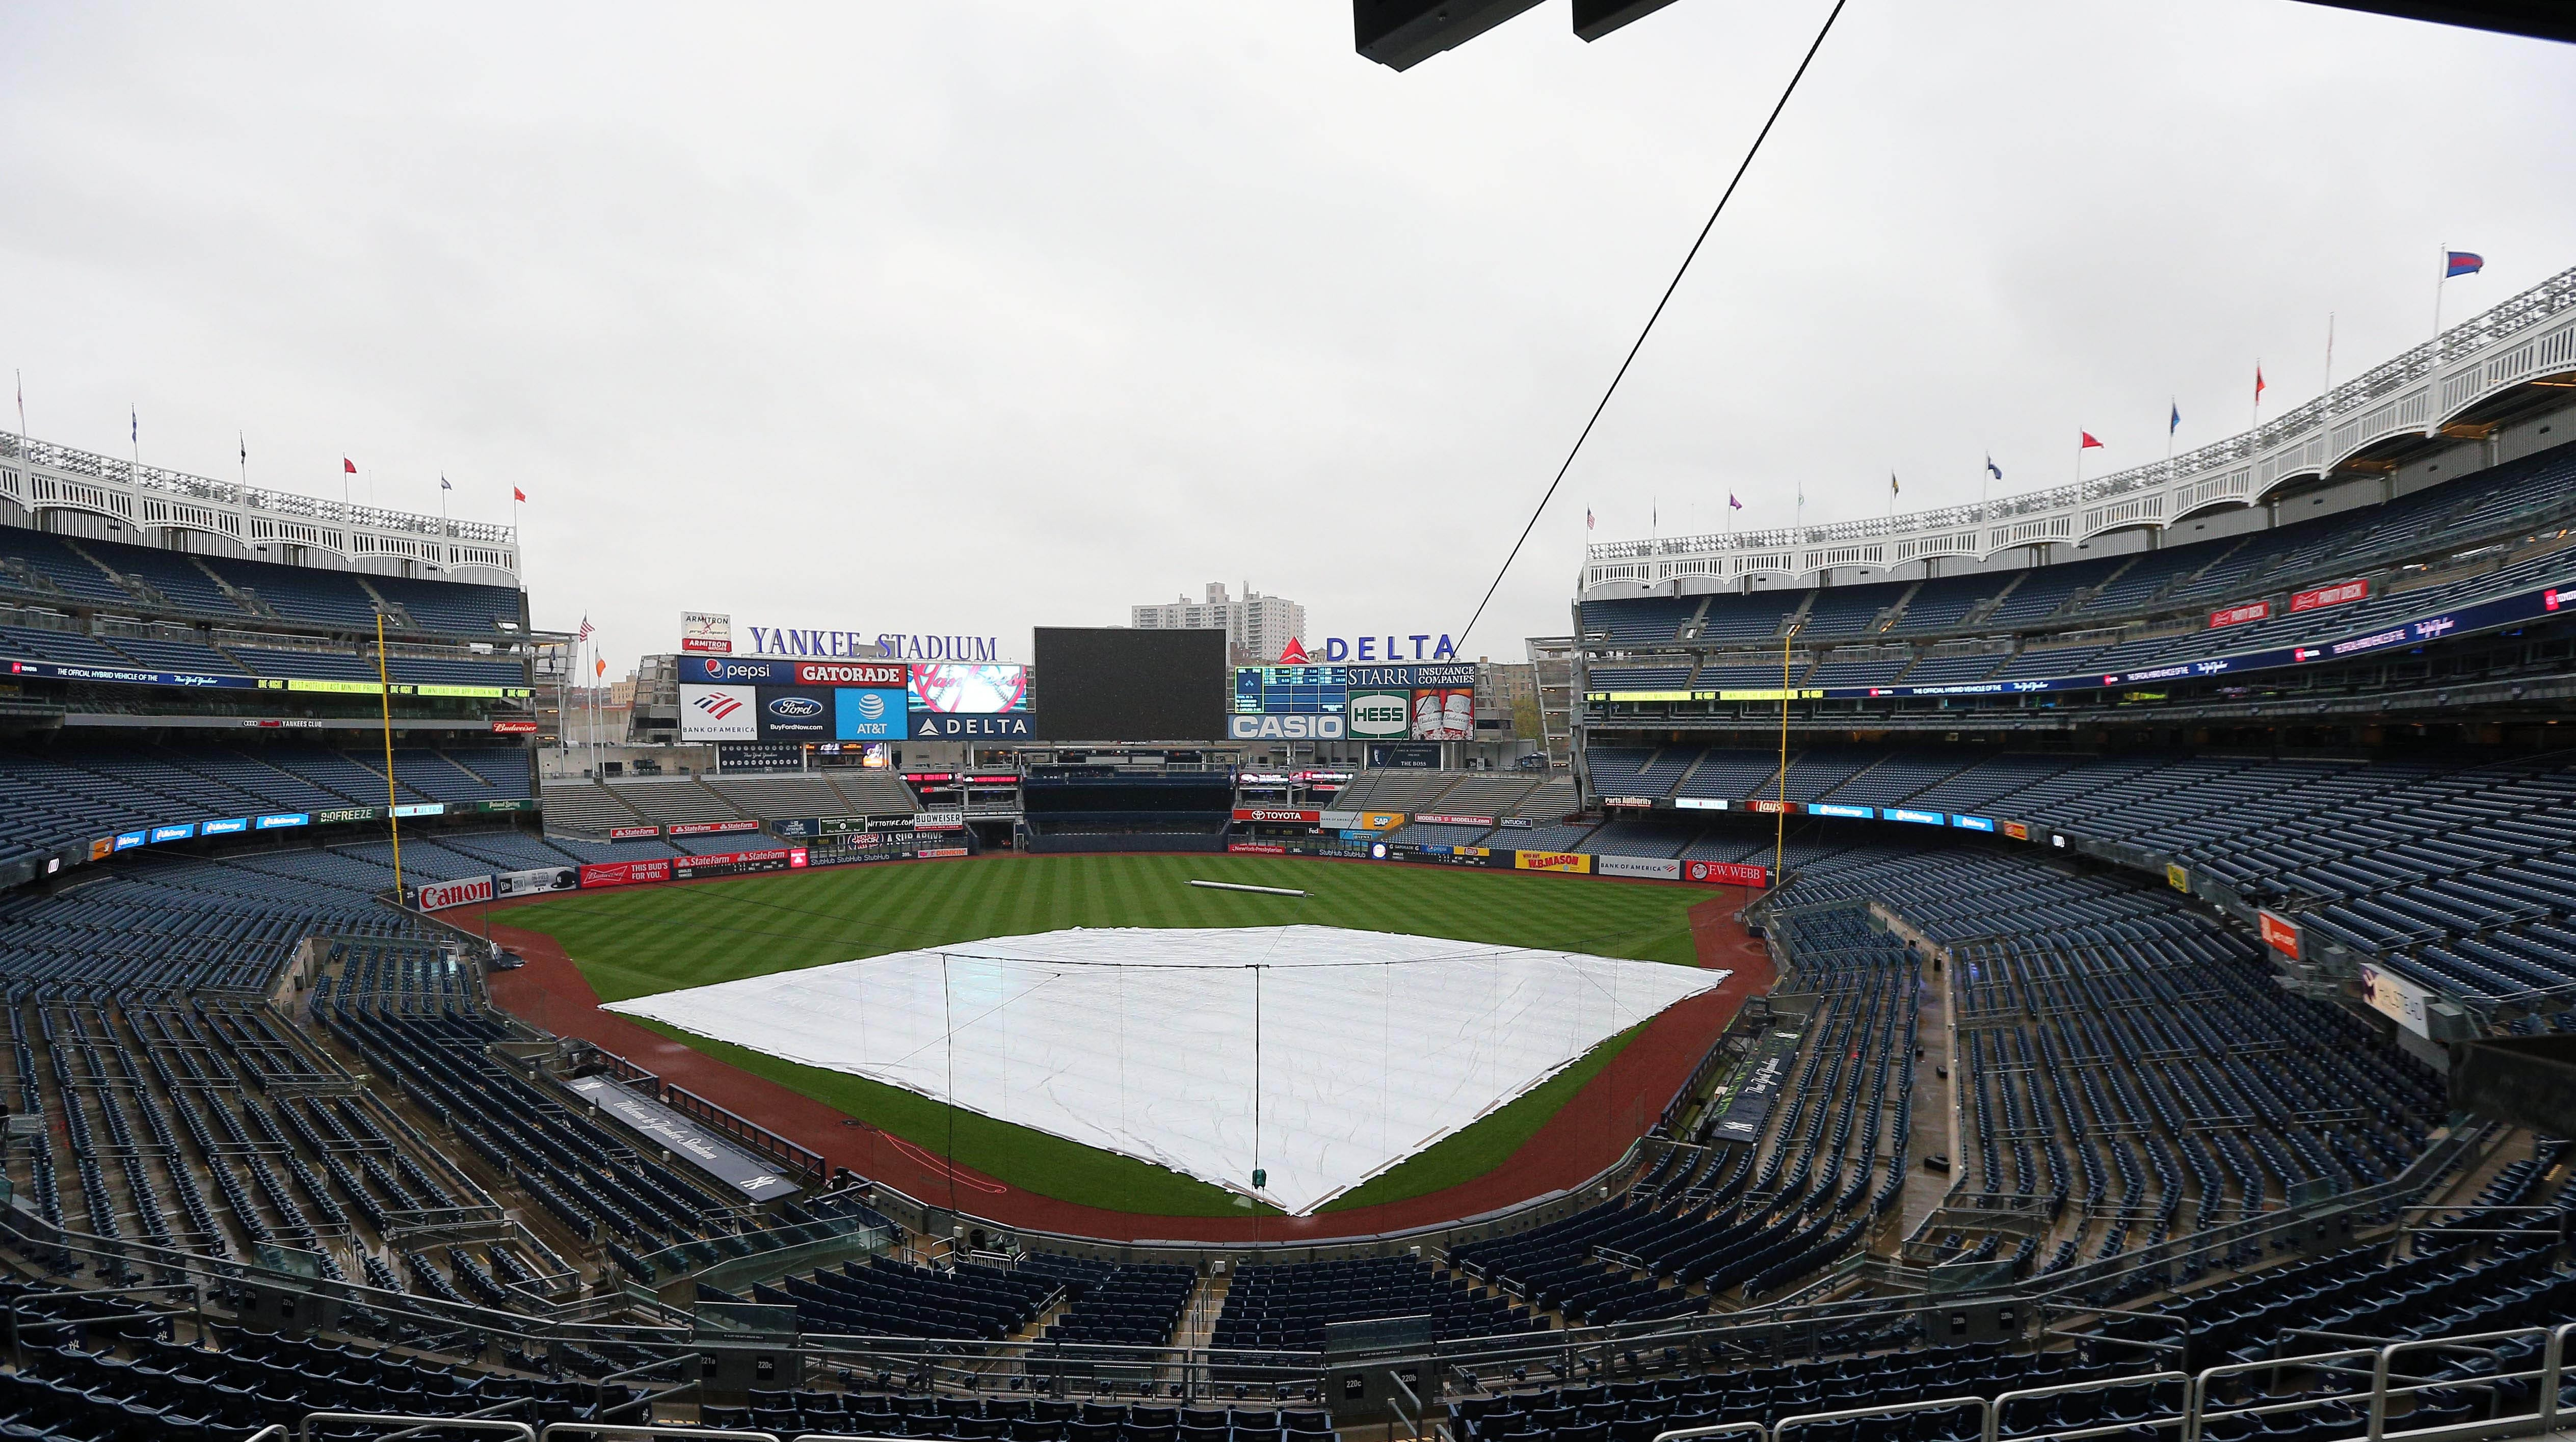 Yankees vs. Royals postponed due to weather on Friday